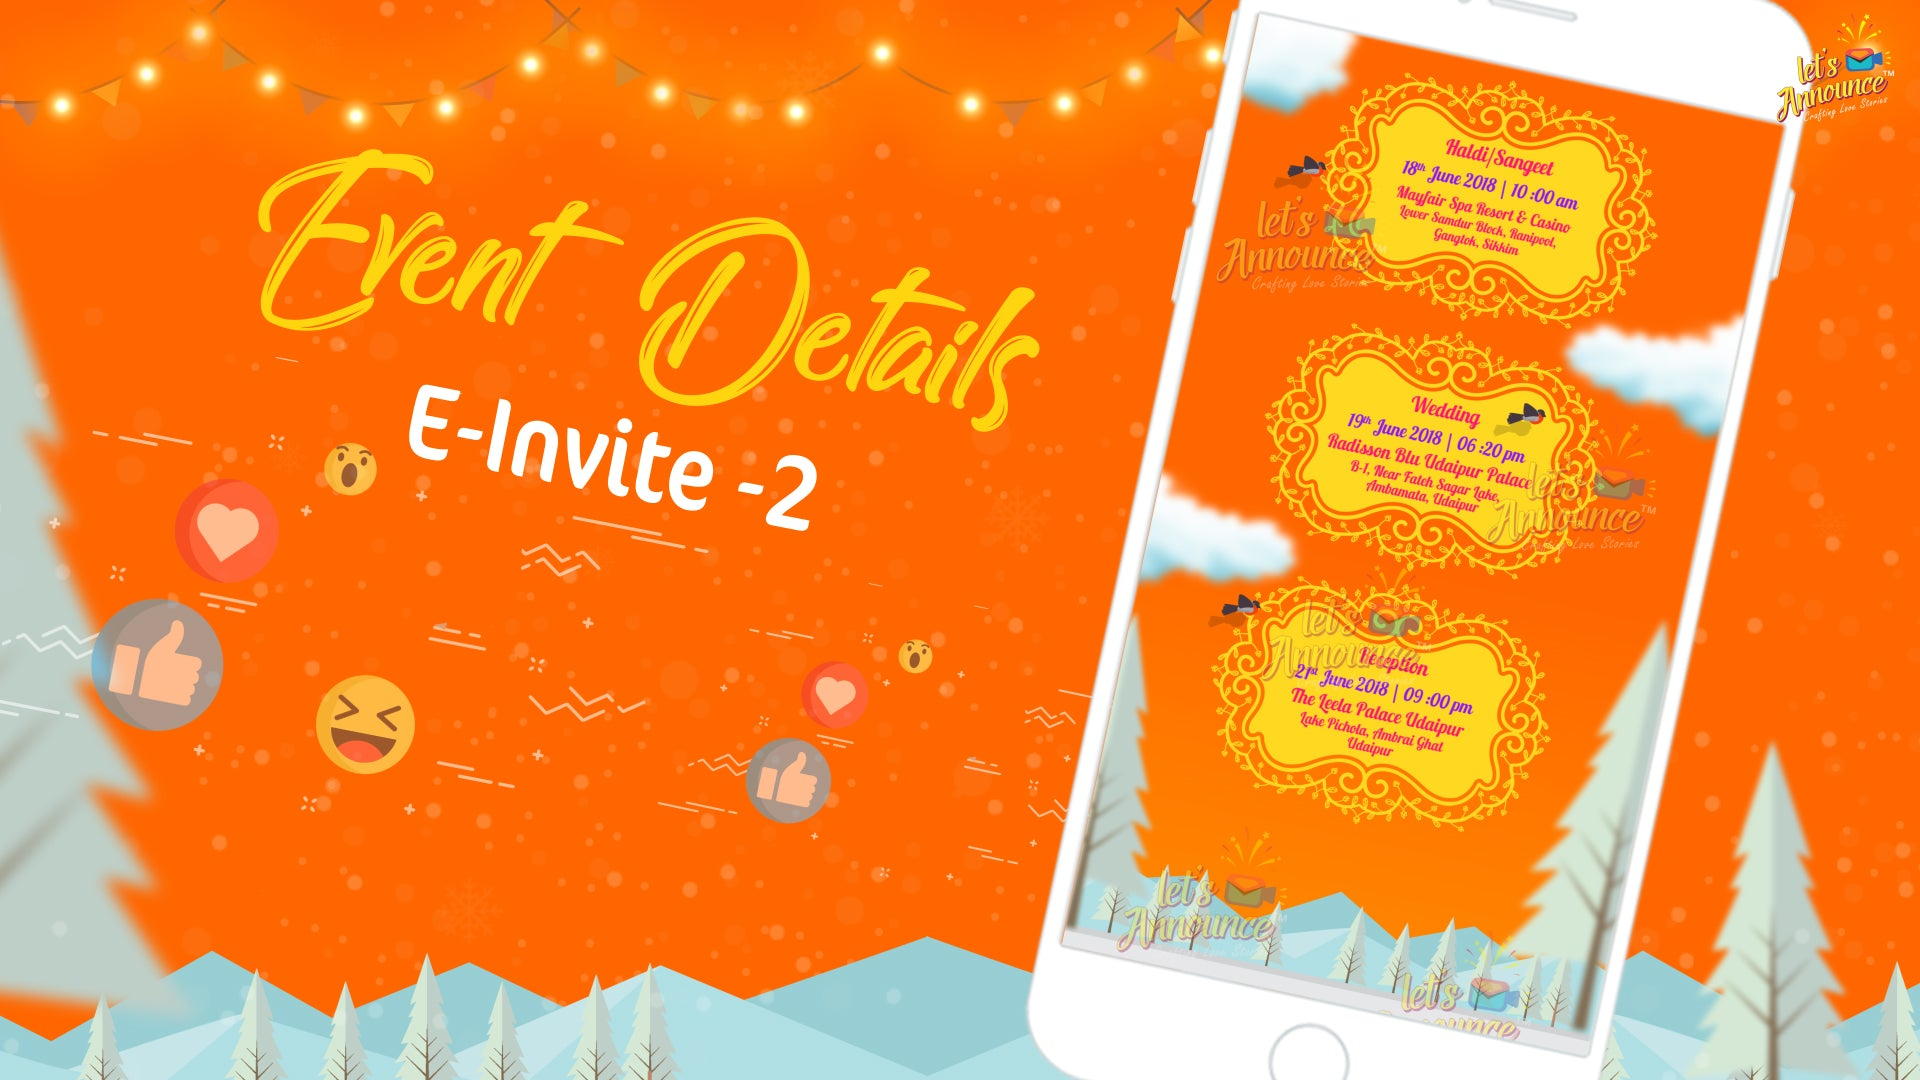 Fairy Tale Wedding E-invite (USD 50$)